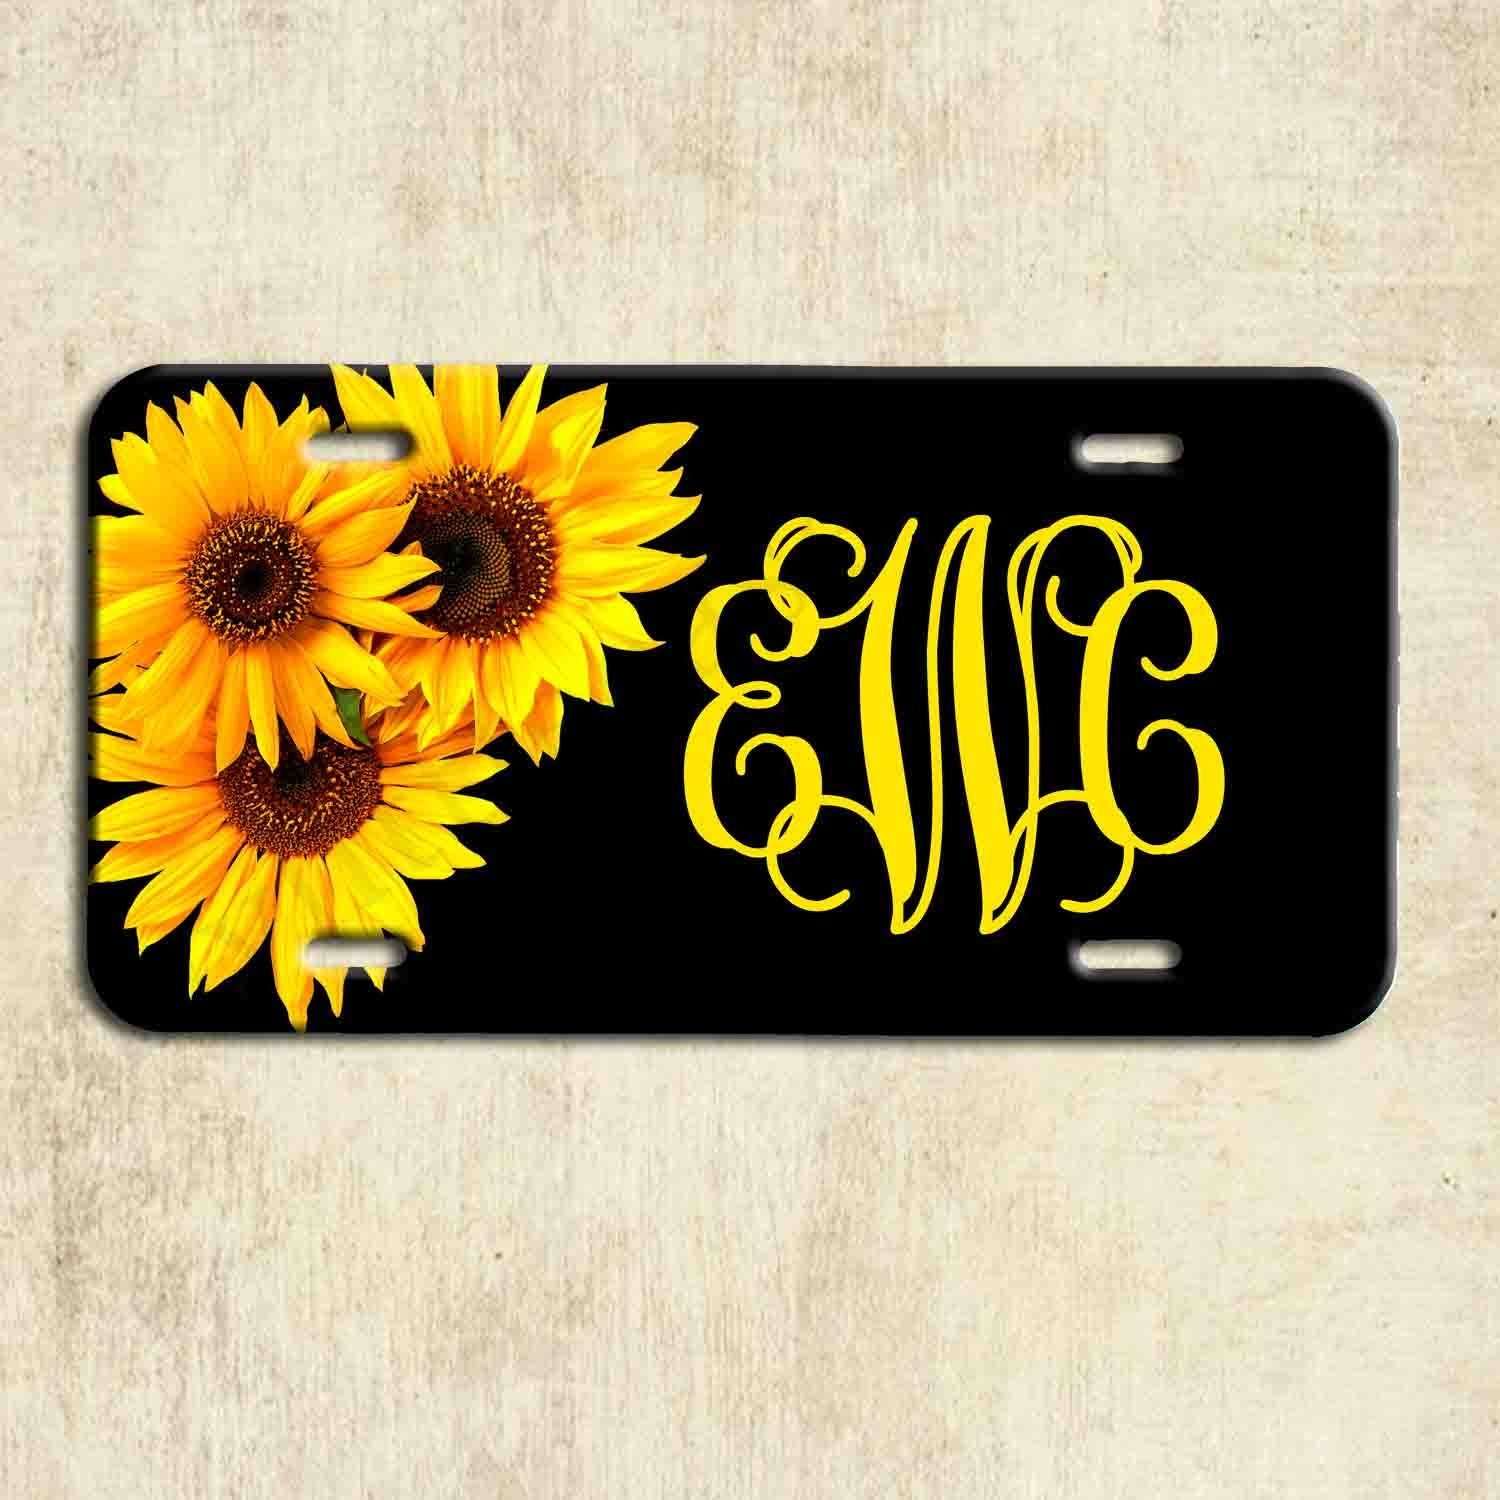 Dujiea License Plate Aluminum Sketch Sloth Sunflower Car Tag Cover Decorative License Plates for Front of Car Durable Metal Car Plate for Women//Girls//Men//Boys Vanity Gifts 6 X 12 in